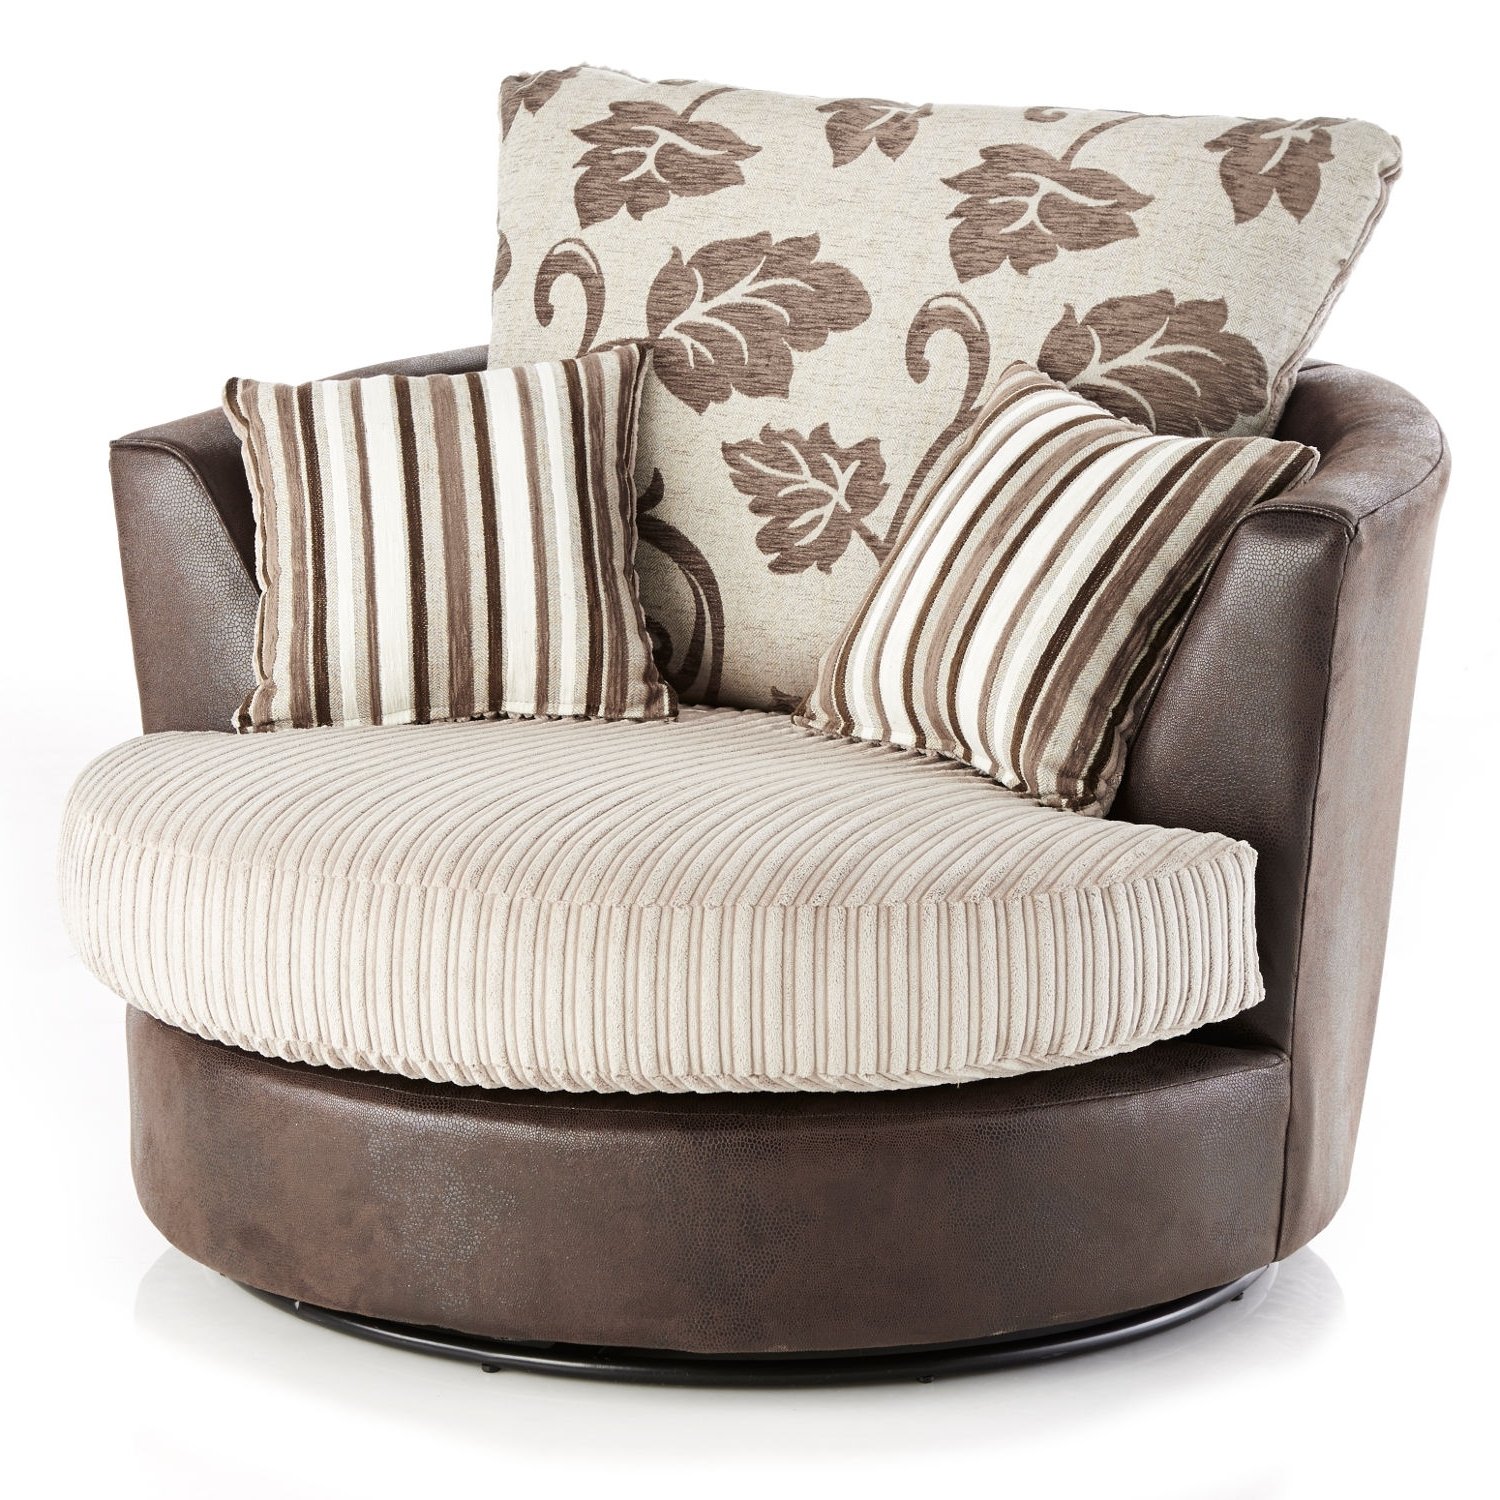 Lush Jumbo Cord Swivel Chair – Next Day Delivery Lush Jumbo Cord Inside Well Known Sofas With Swivel Chair (View 4 of 15)